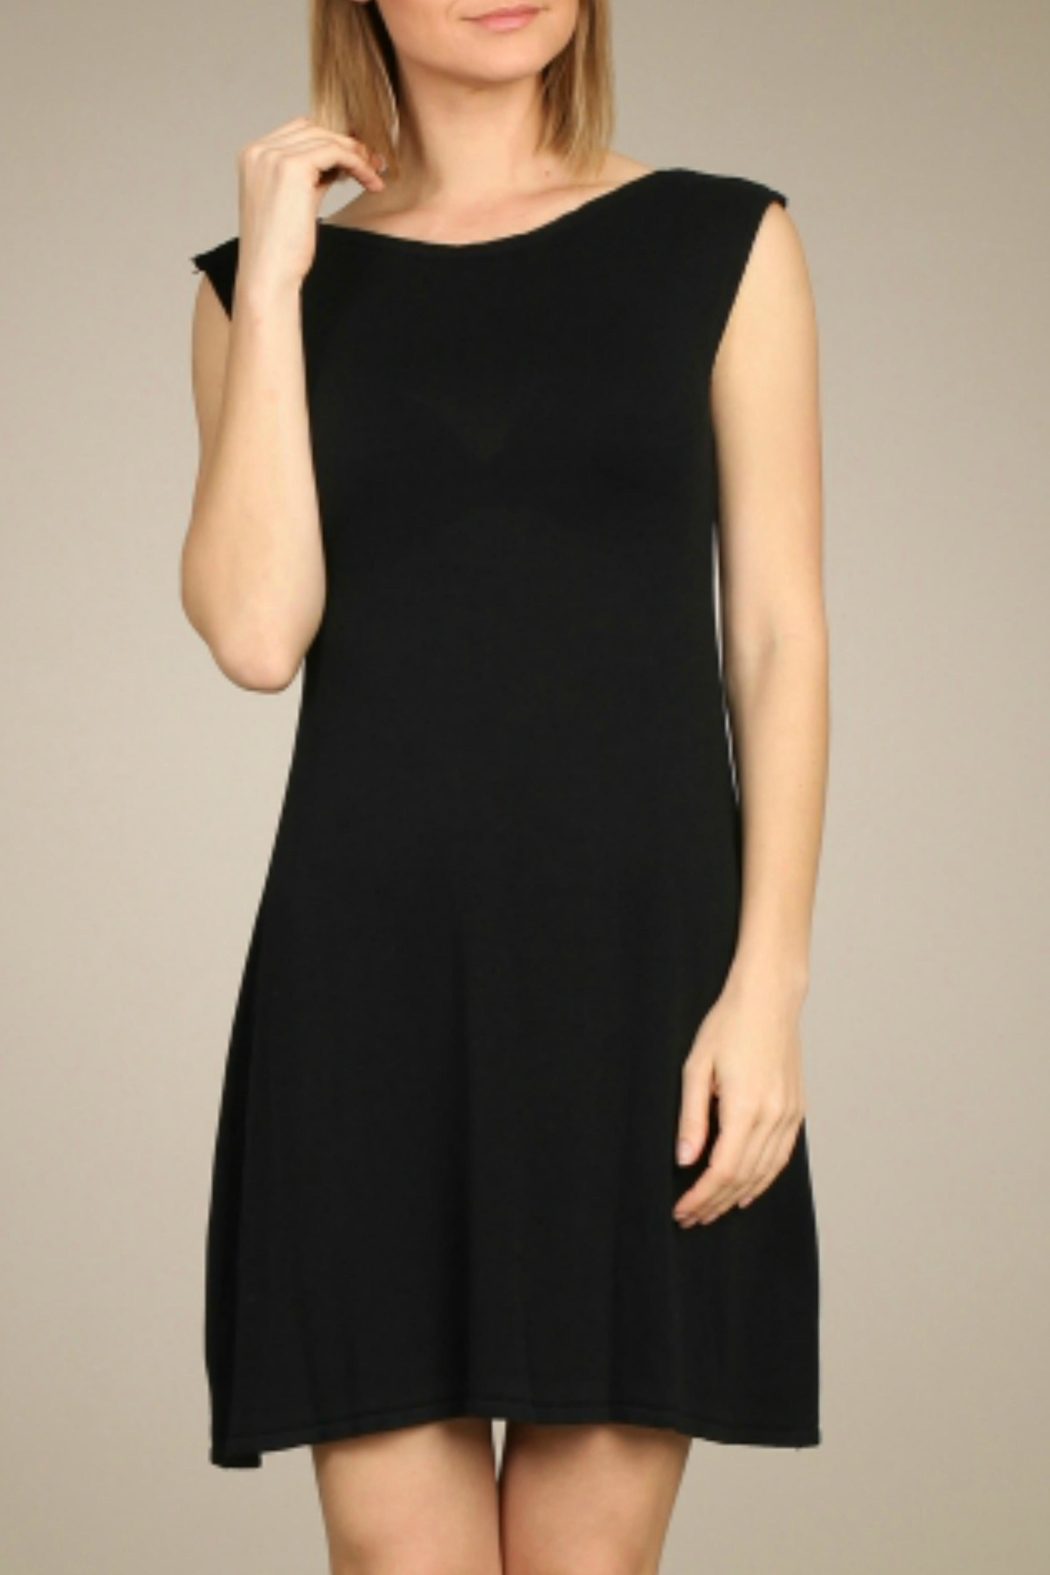 M. Rena Black Knit Dress - Main Image